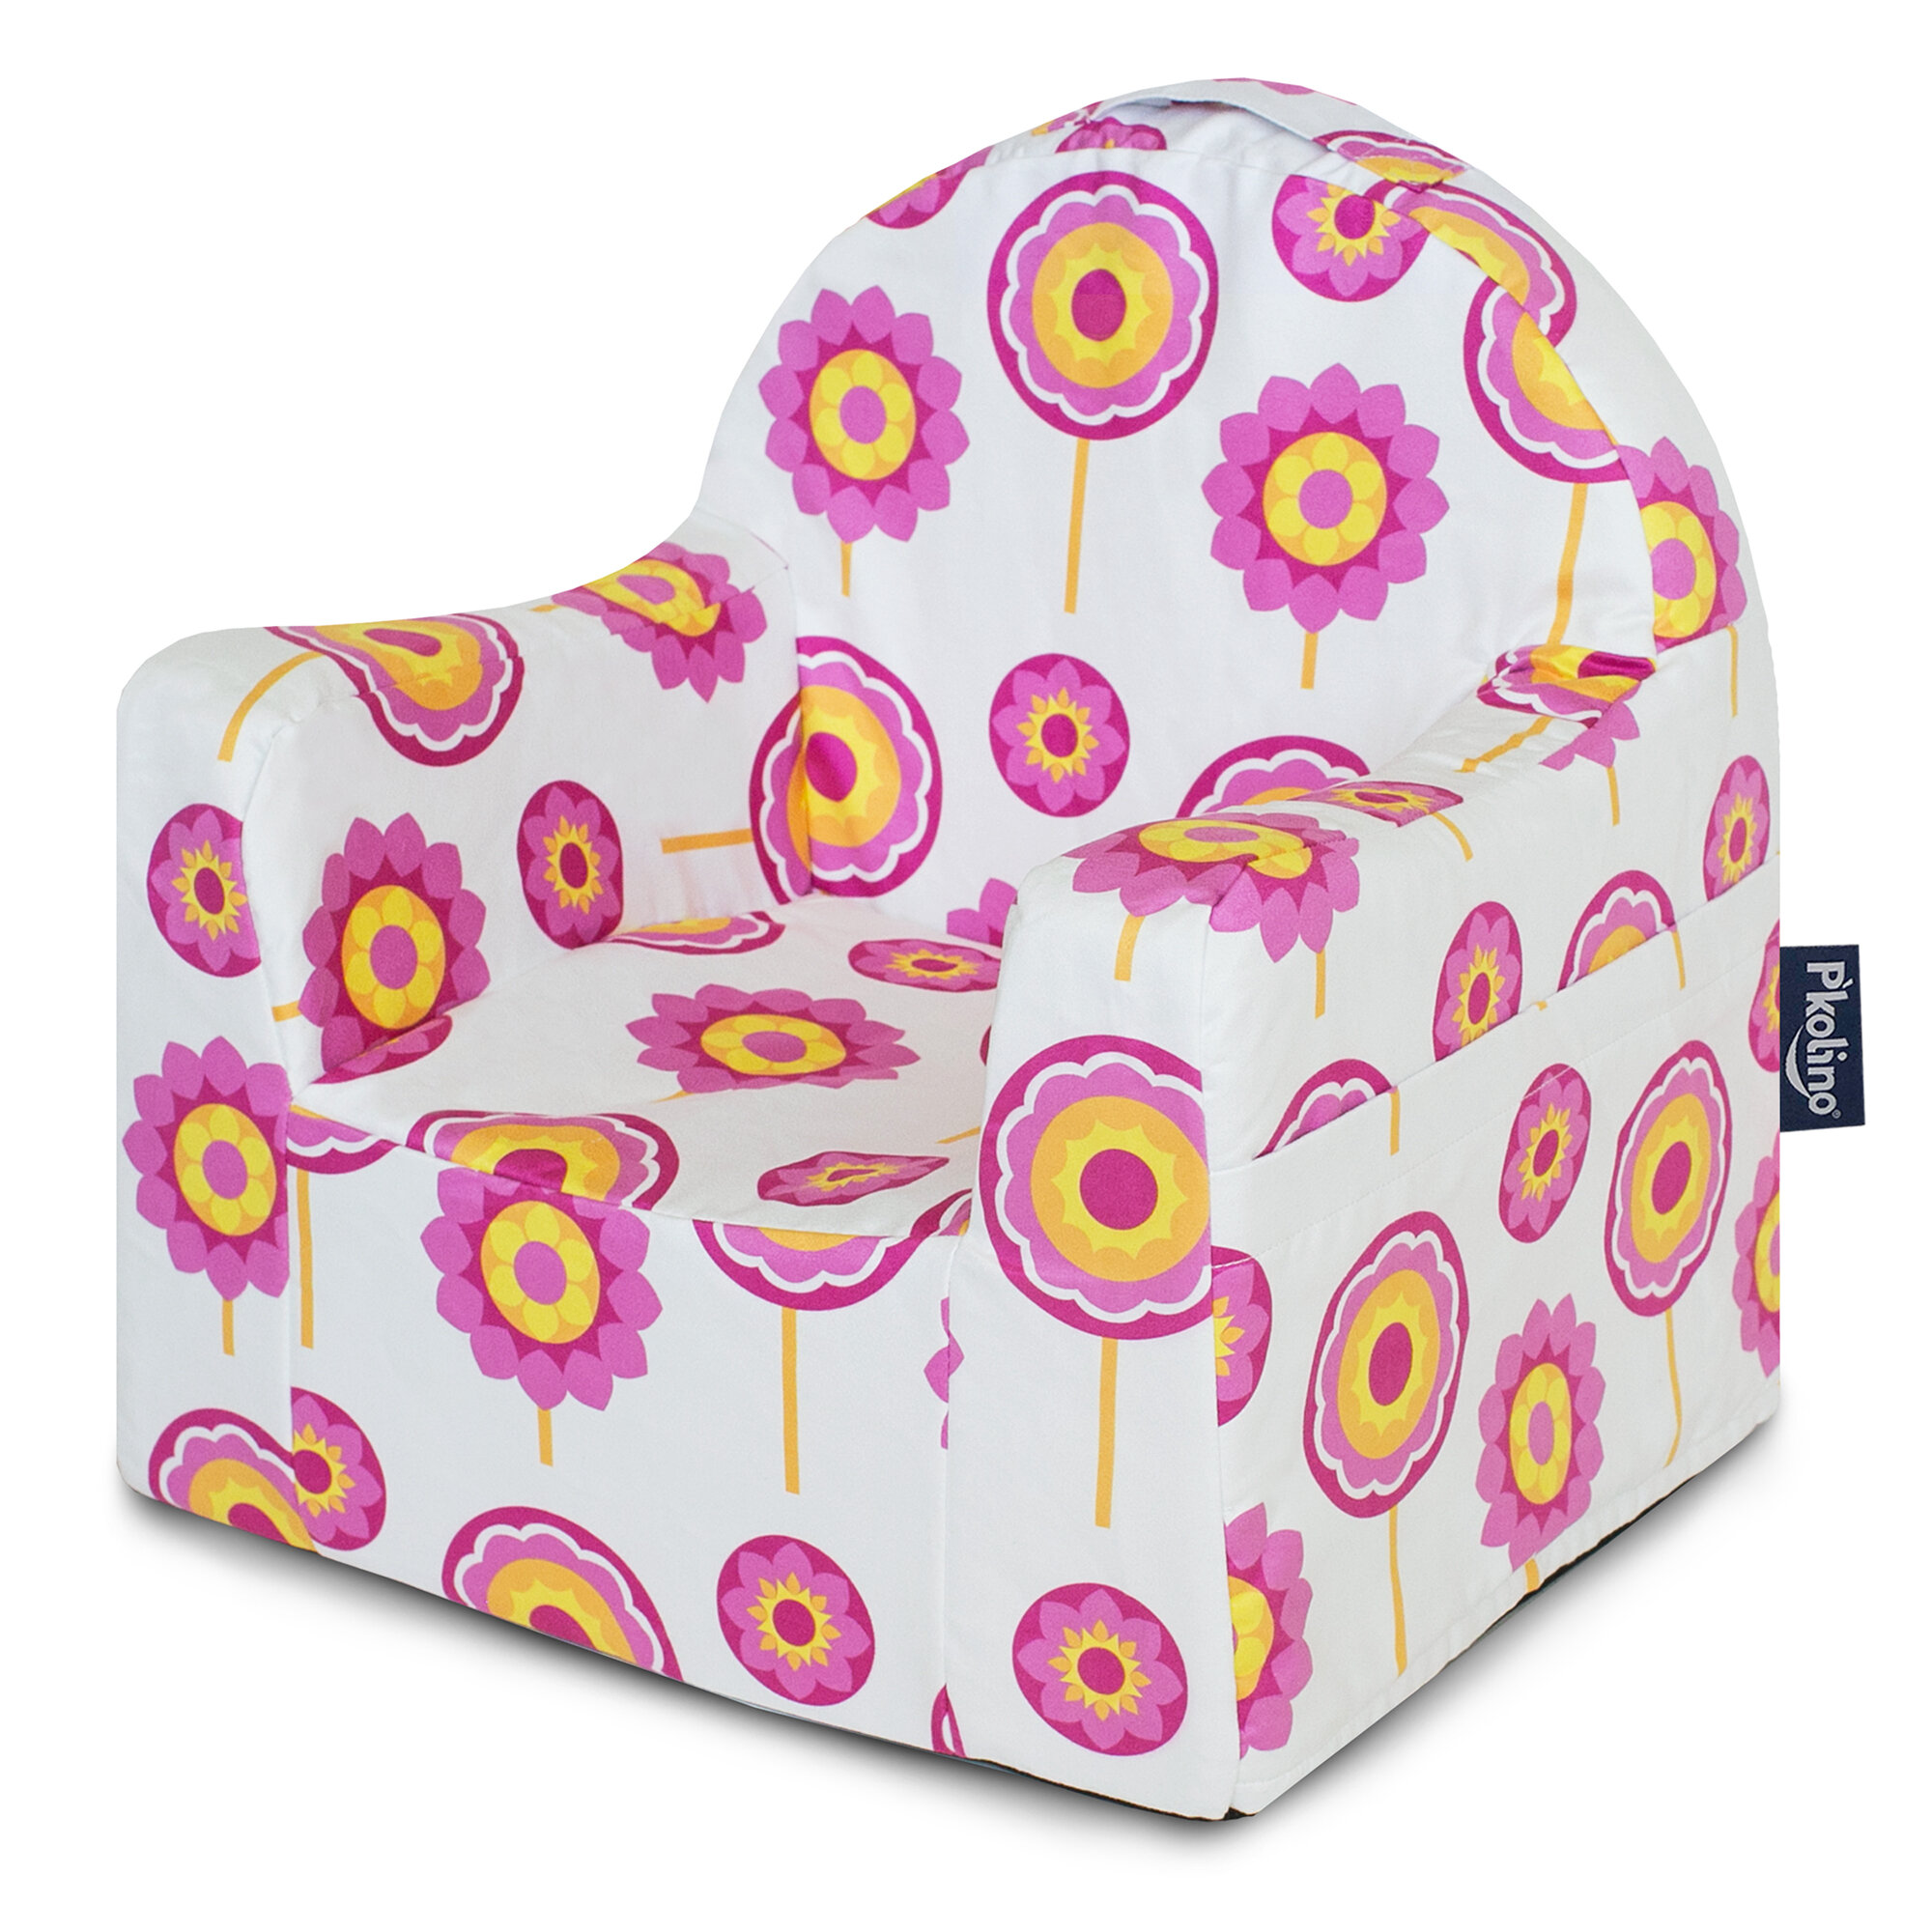 Floral Foam Toddler Kids Chairs Seating You Ll Love In 2021 Wayfair